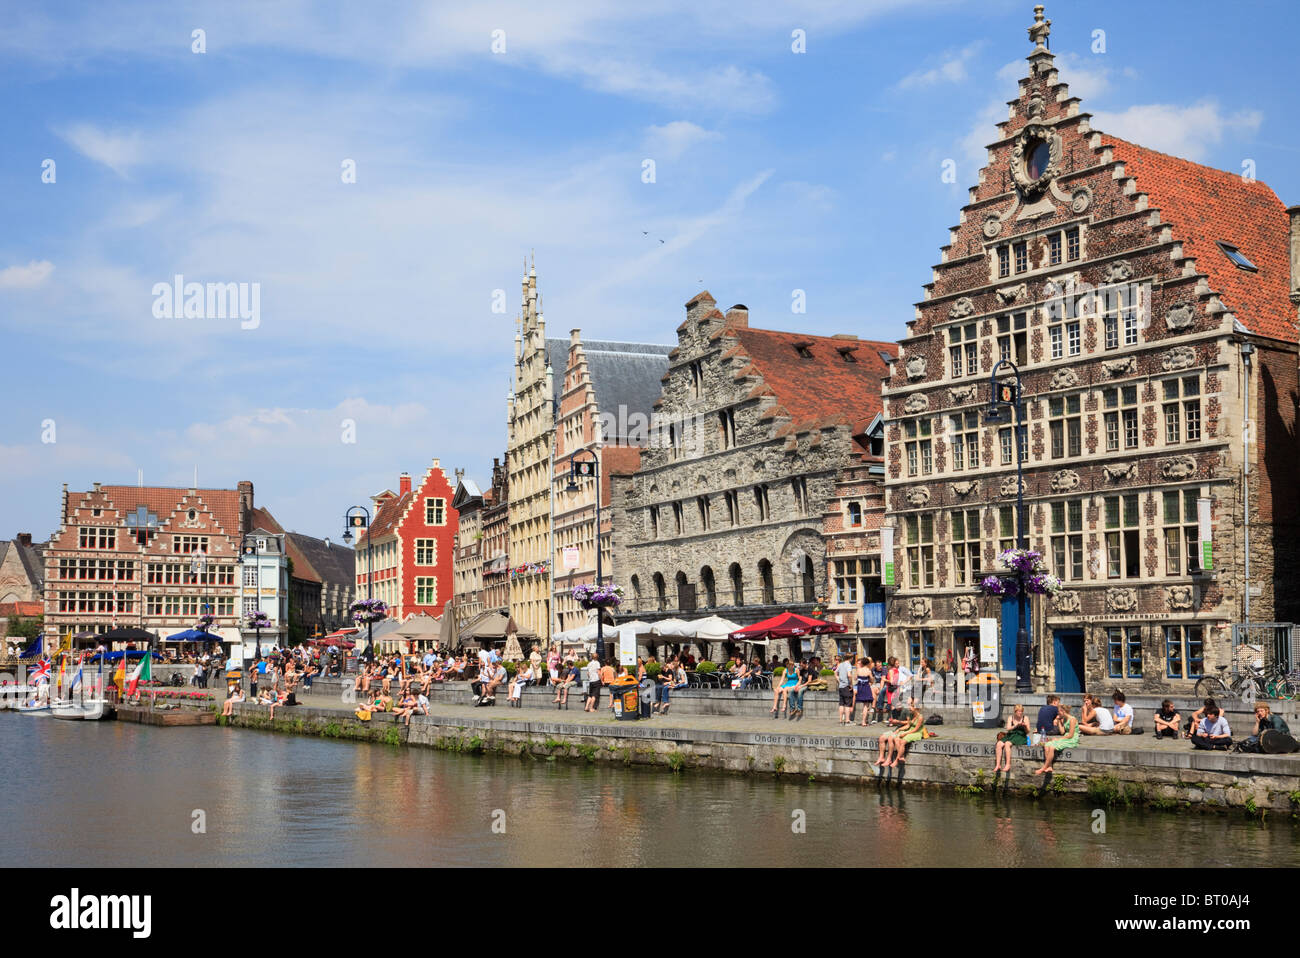 Graslei Site, Ghent, East Flanders, Belgium. River Leie Tussen Bruggen harbour lined with medieval quayside gabbled - Stock Image